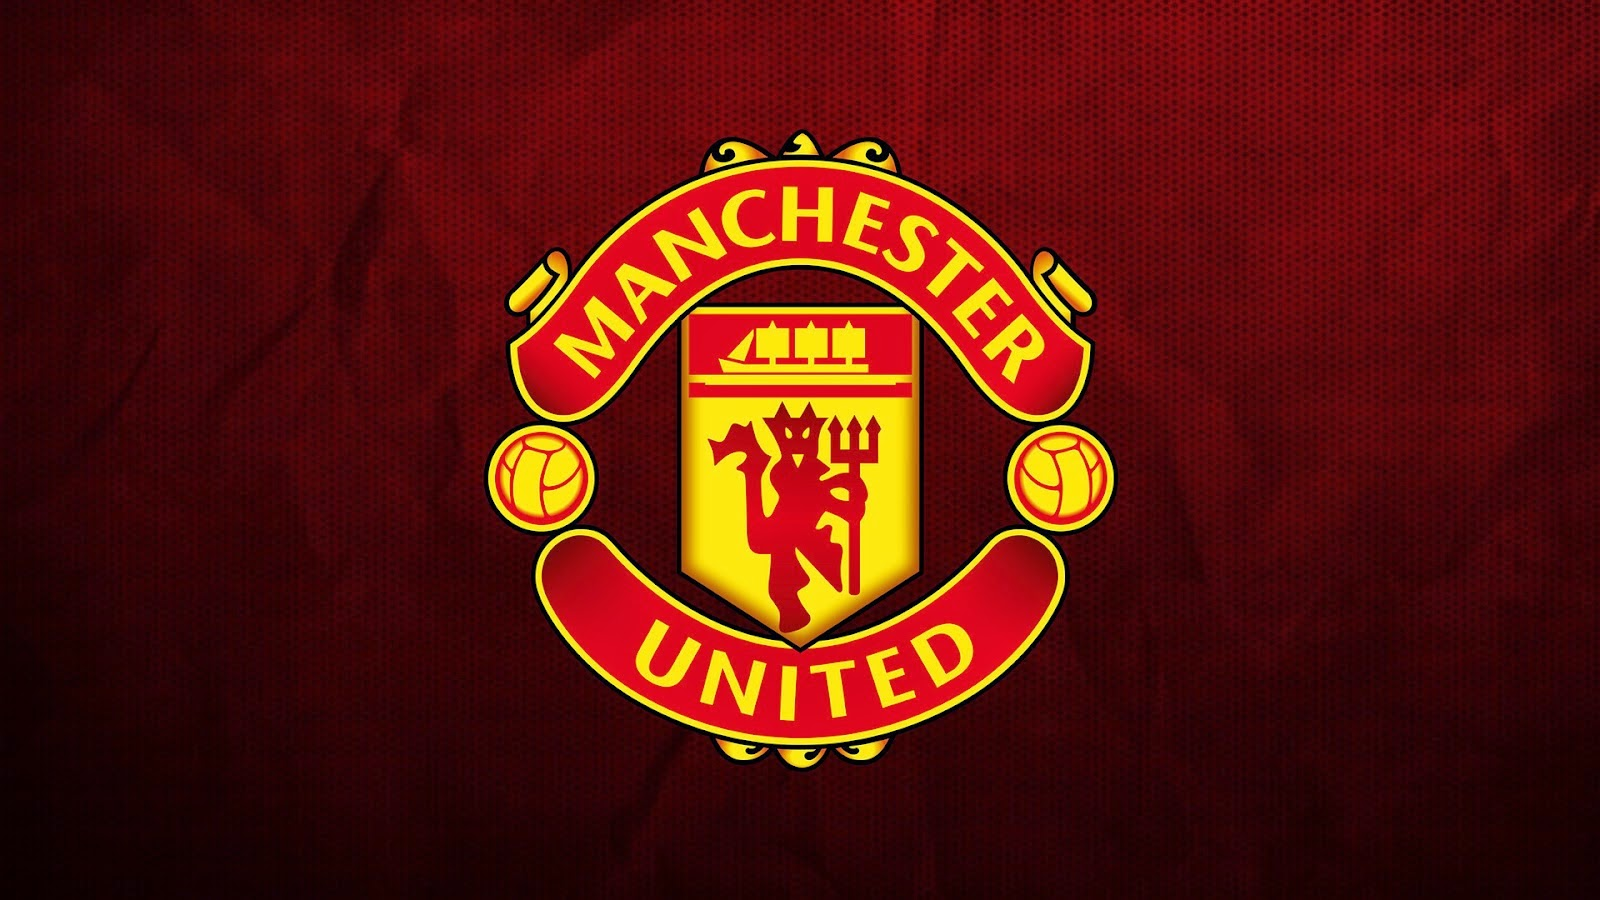 Download manchester united wallpapers hd wallpaper manchester united wallpapers voltagebd